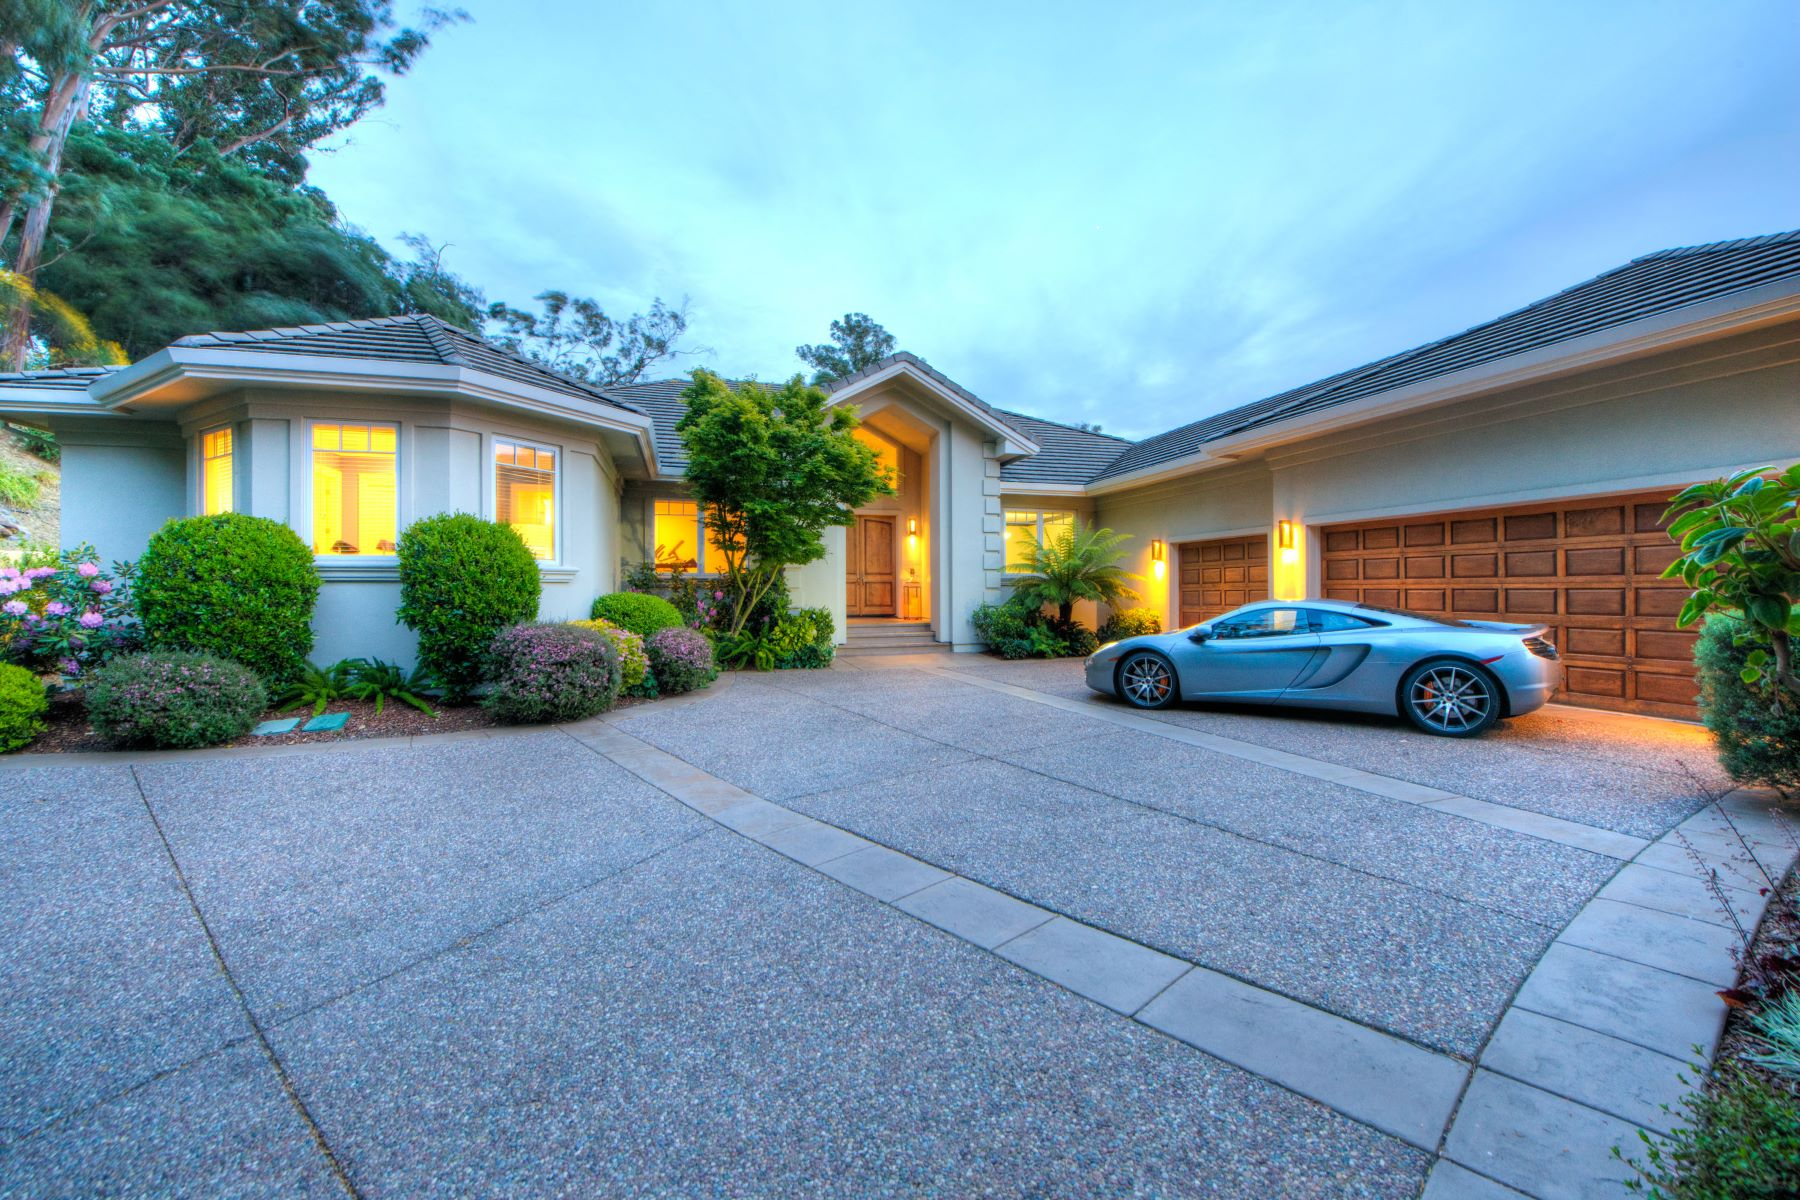 獨棟家庭住宅 為 出售 在 Single-Level Gated Estate in Country Club With Mt. Tam Views 87 Brodea Way San Rafael, 加利福尼亞州, 94901 美國